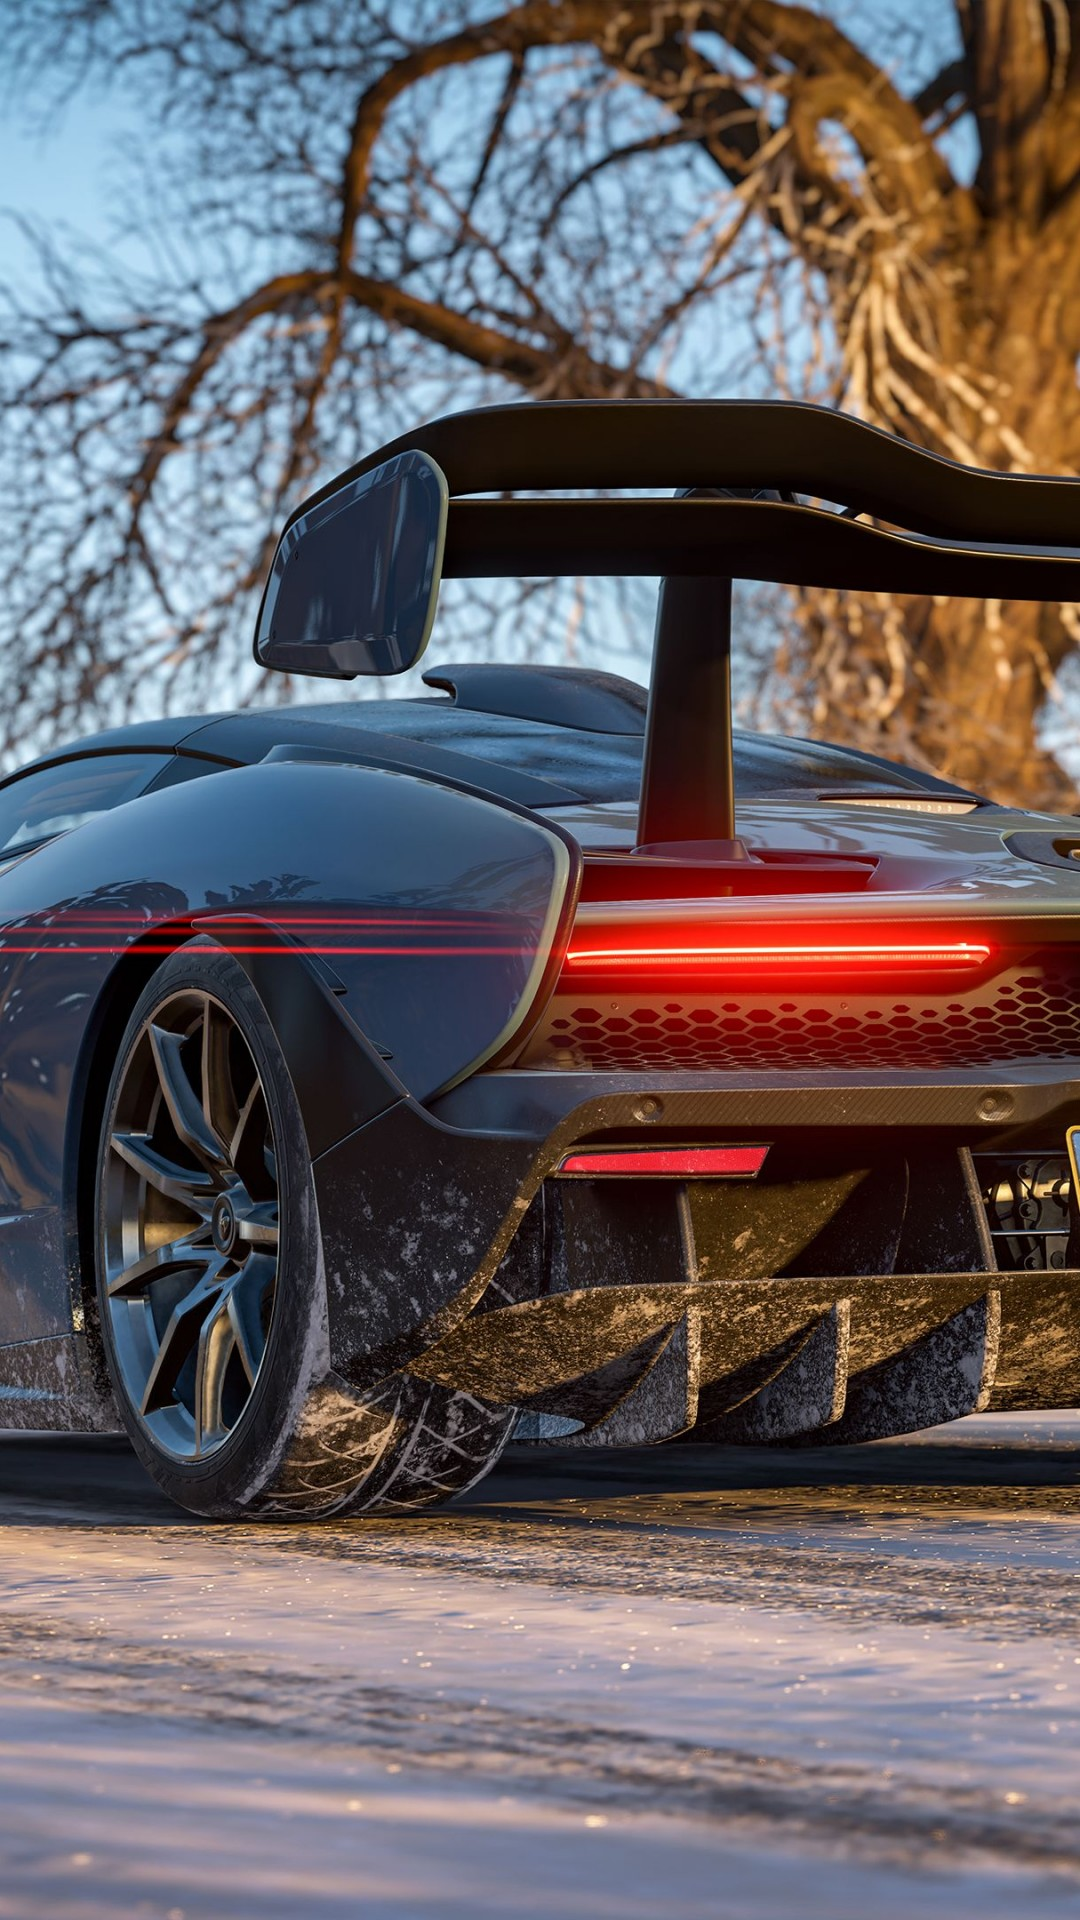 4K Forza Horizon 4 Wallpapers High Quality   Download Free